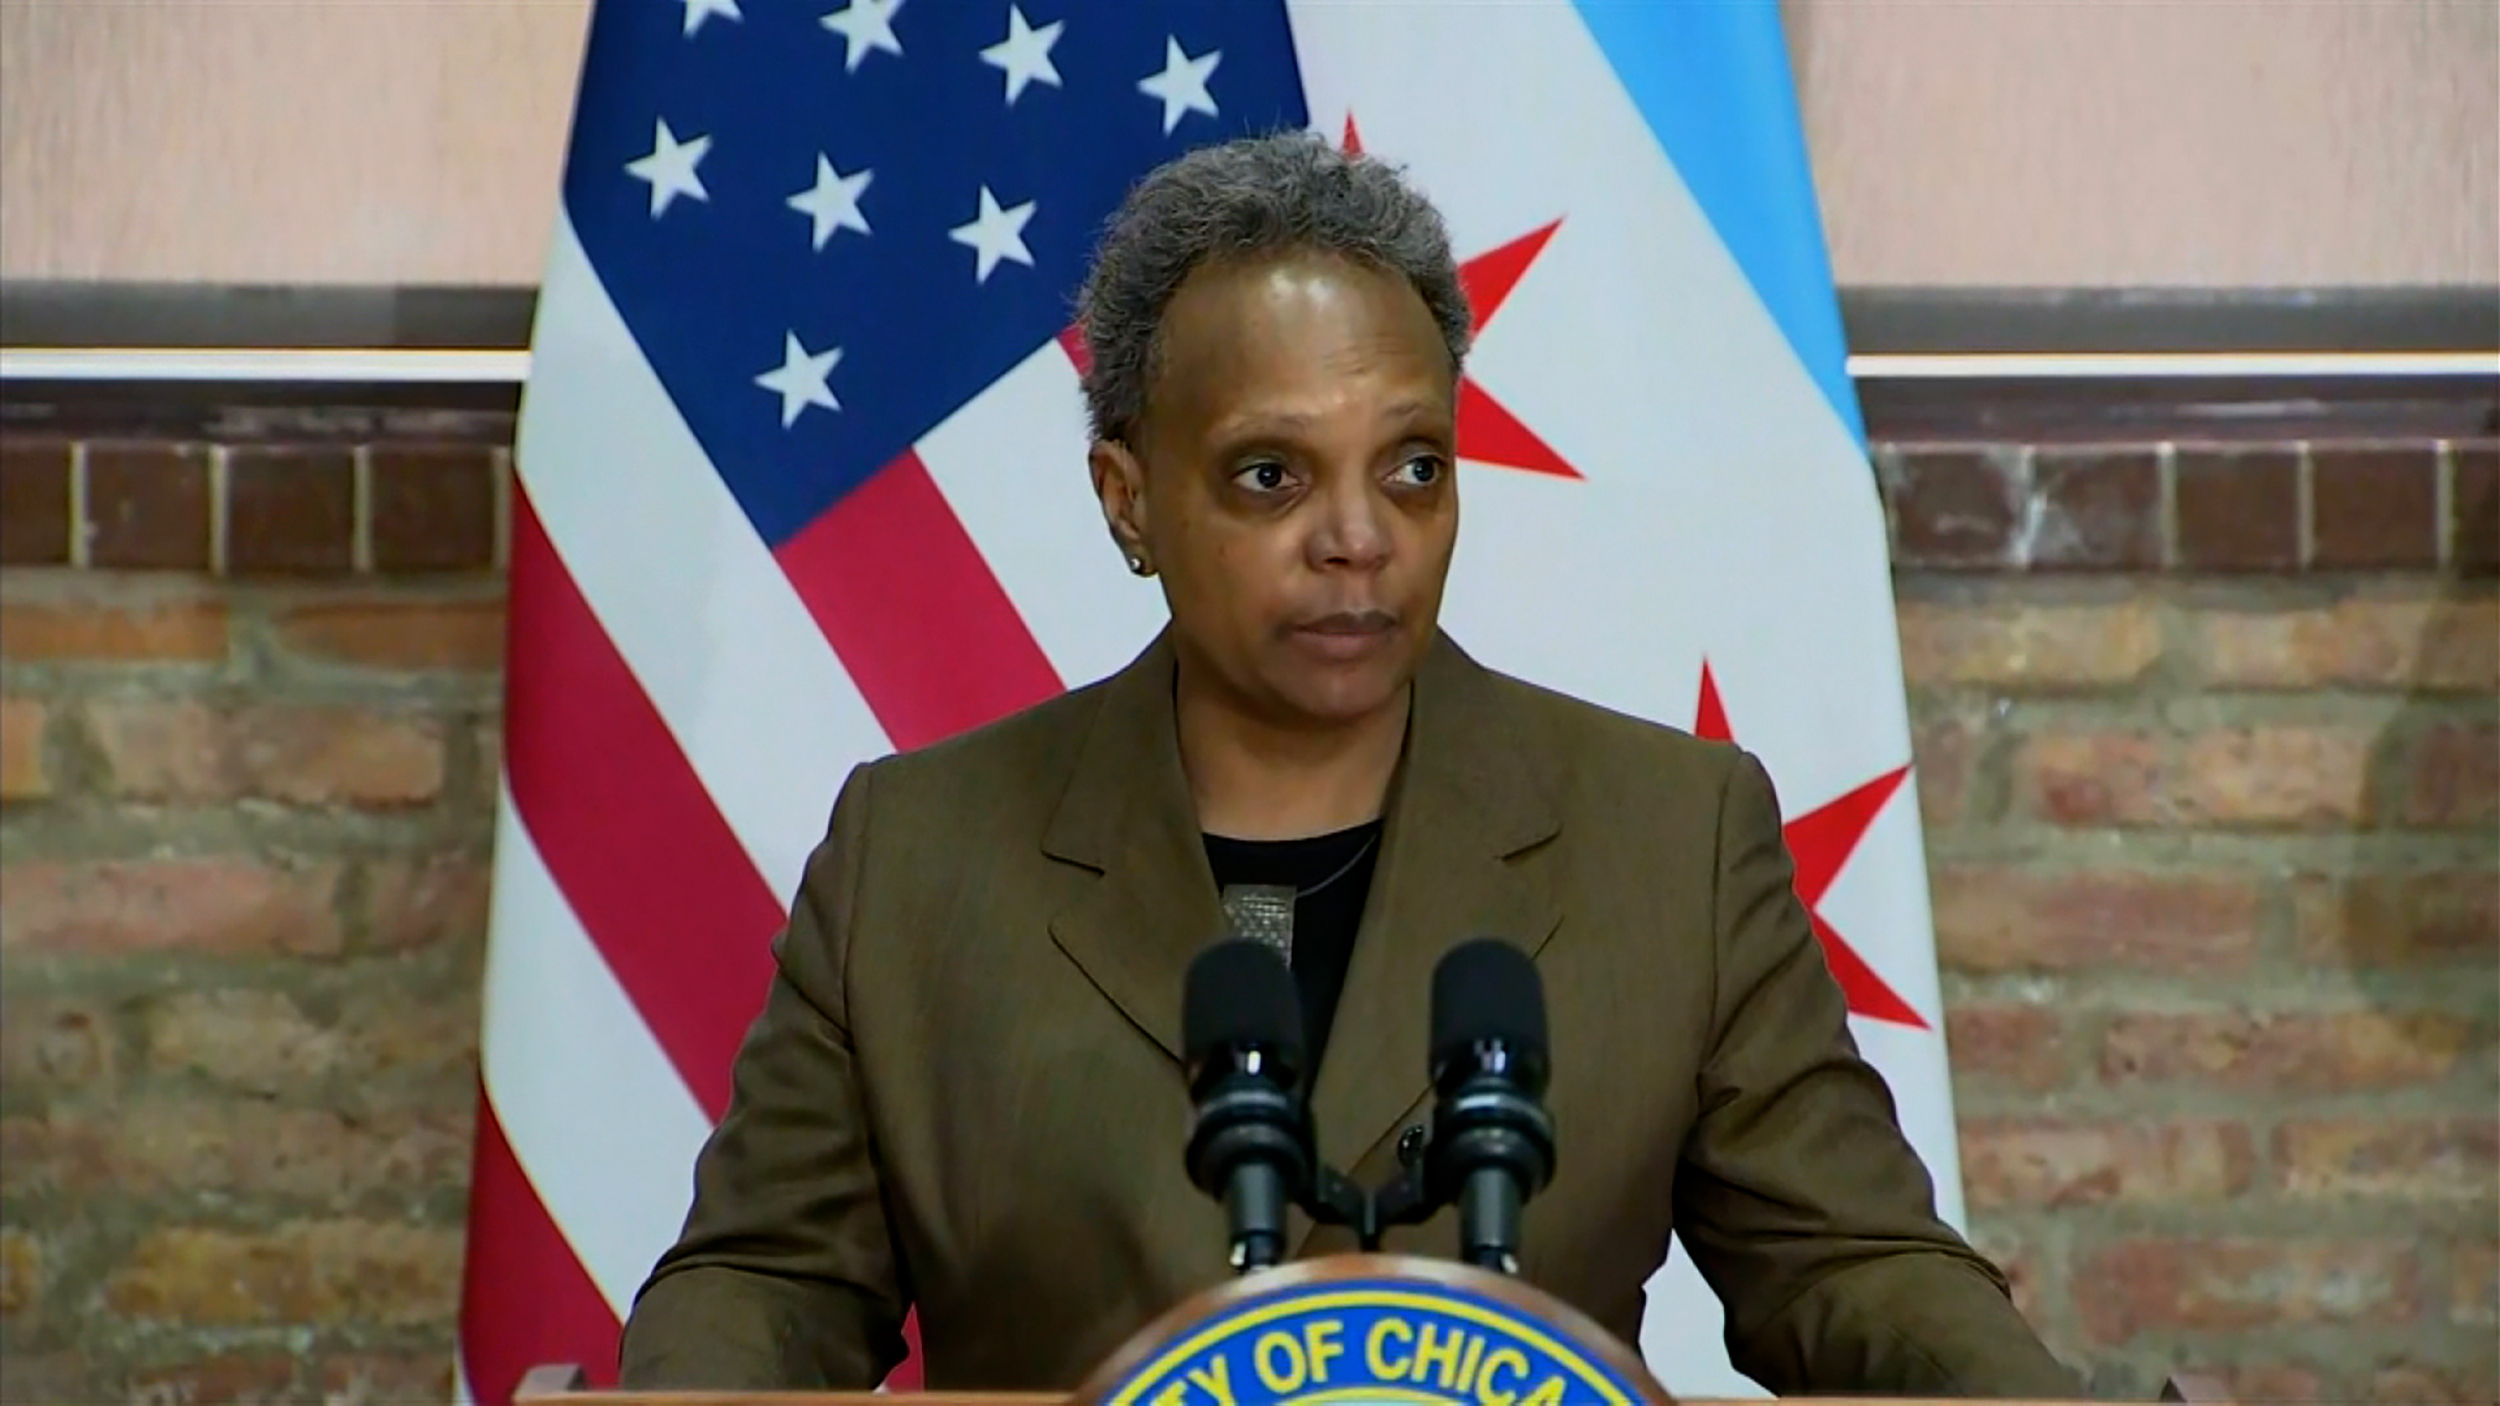 Chicago Mayor Lightfoot under pressure to reform police amid outrage over Adam Toledo shooting